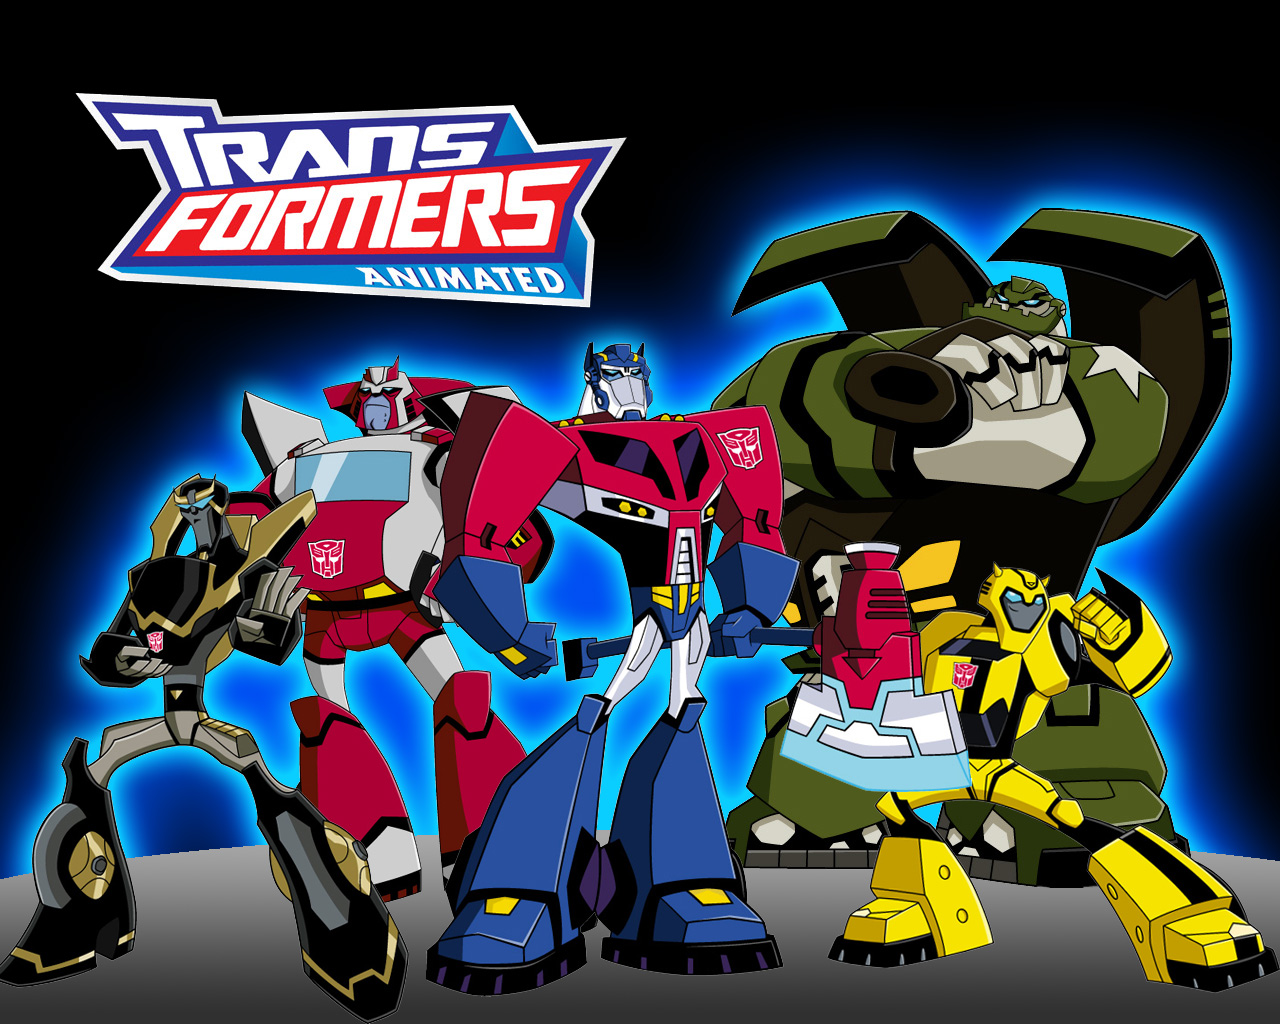 More Transformers Animated News